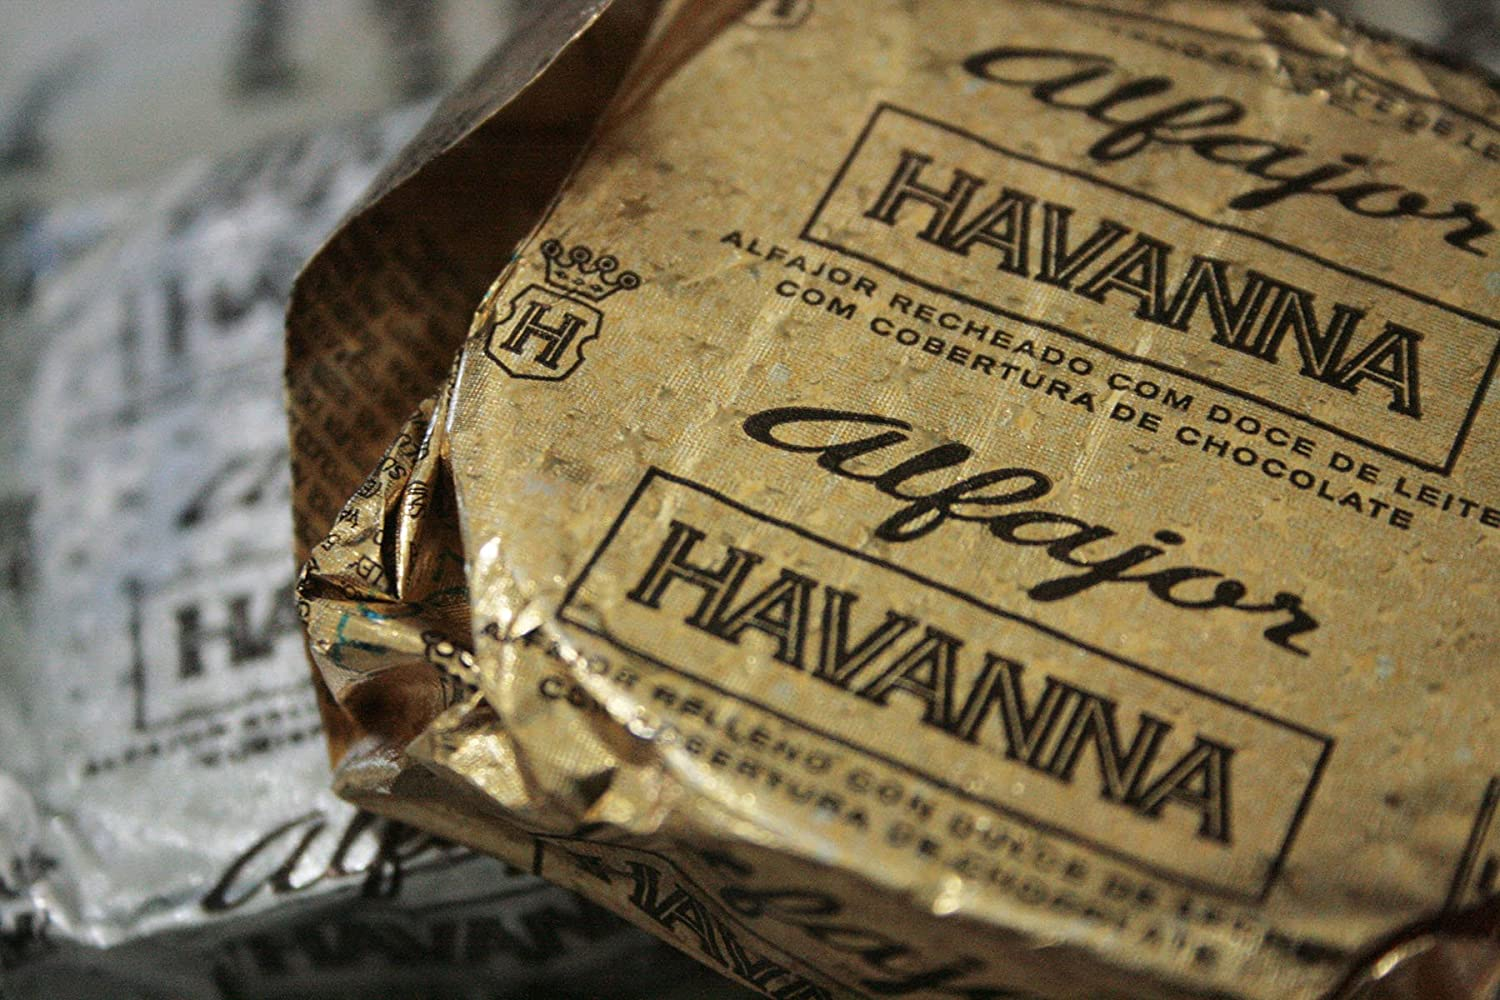 Amazon.com : Havanna Alfajores - Box of 12 Units (Chocolate) : Grocery & Gourmet Food